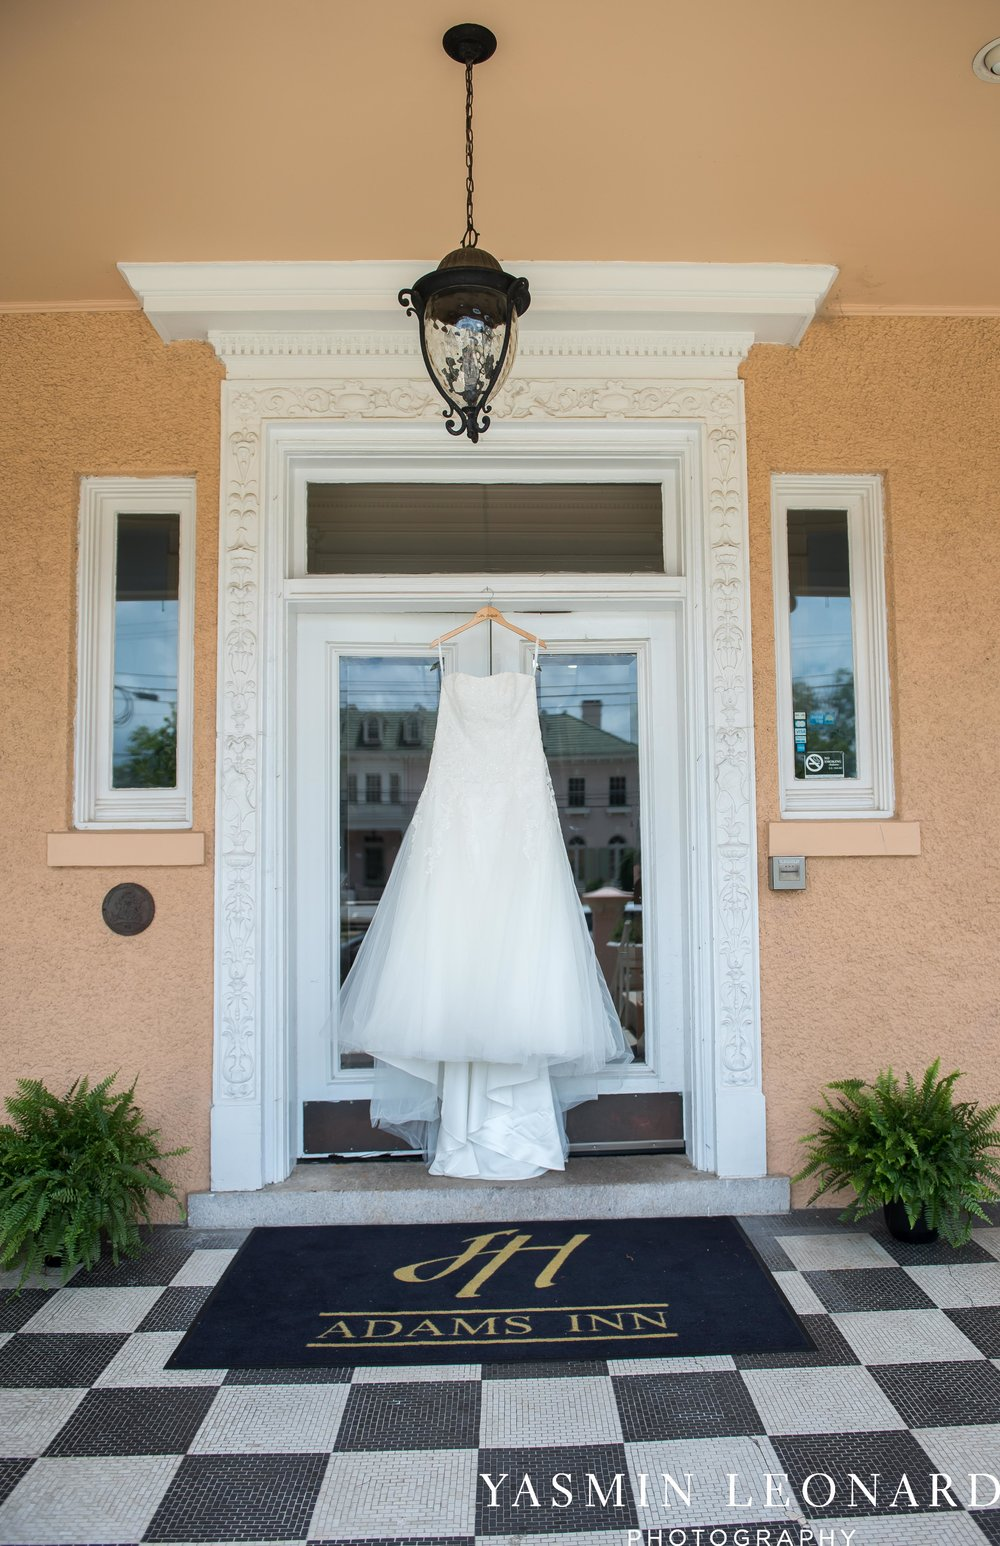 Yasmin Leonard Photography - NC Photographer - High Point Wedding - High Point Wedding Photographer - High Point Weddings - JH Adams Inn - NC Photographer - NC Wedding Photographer-2.jpg